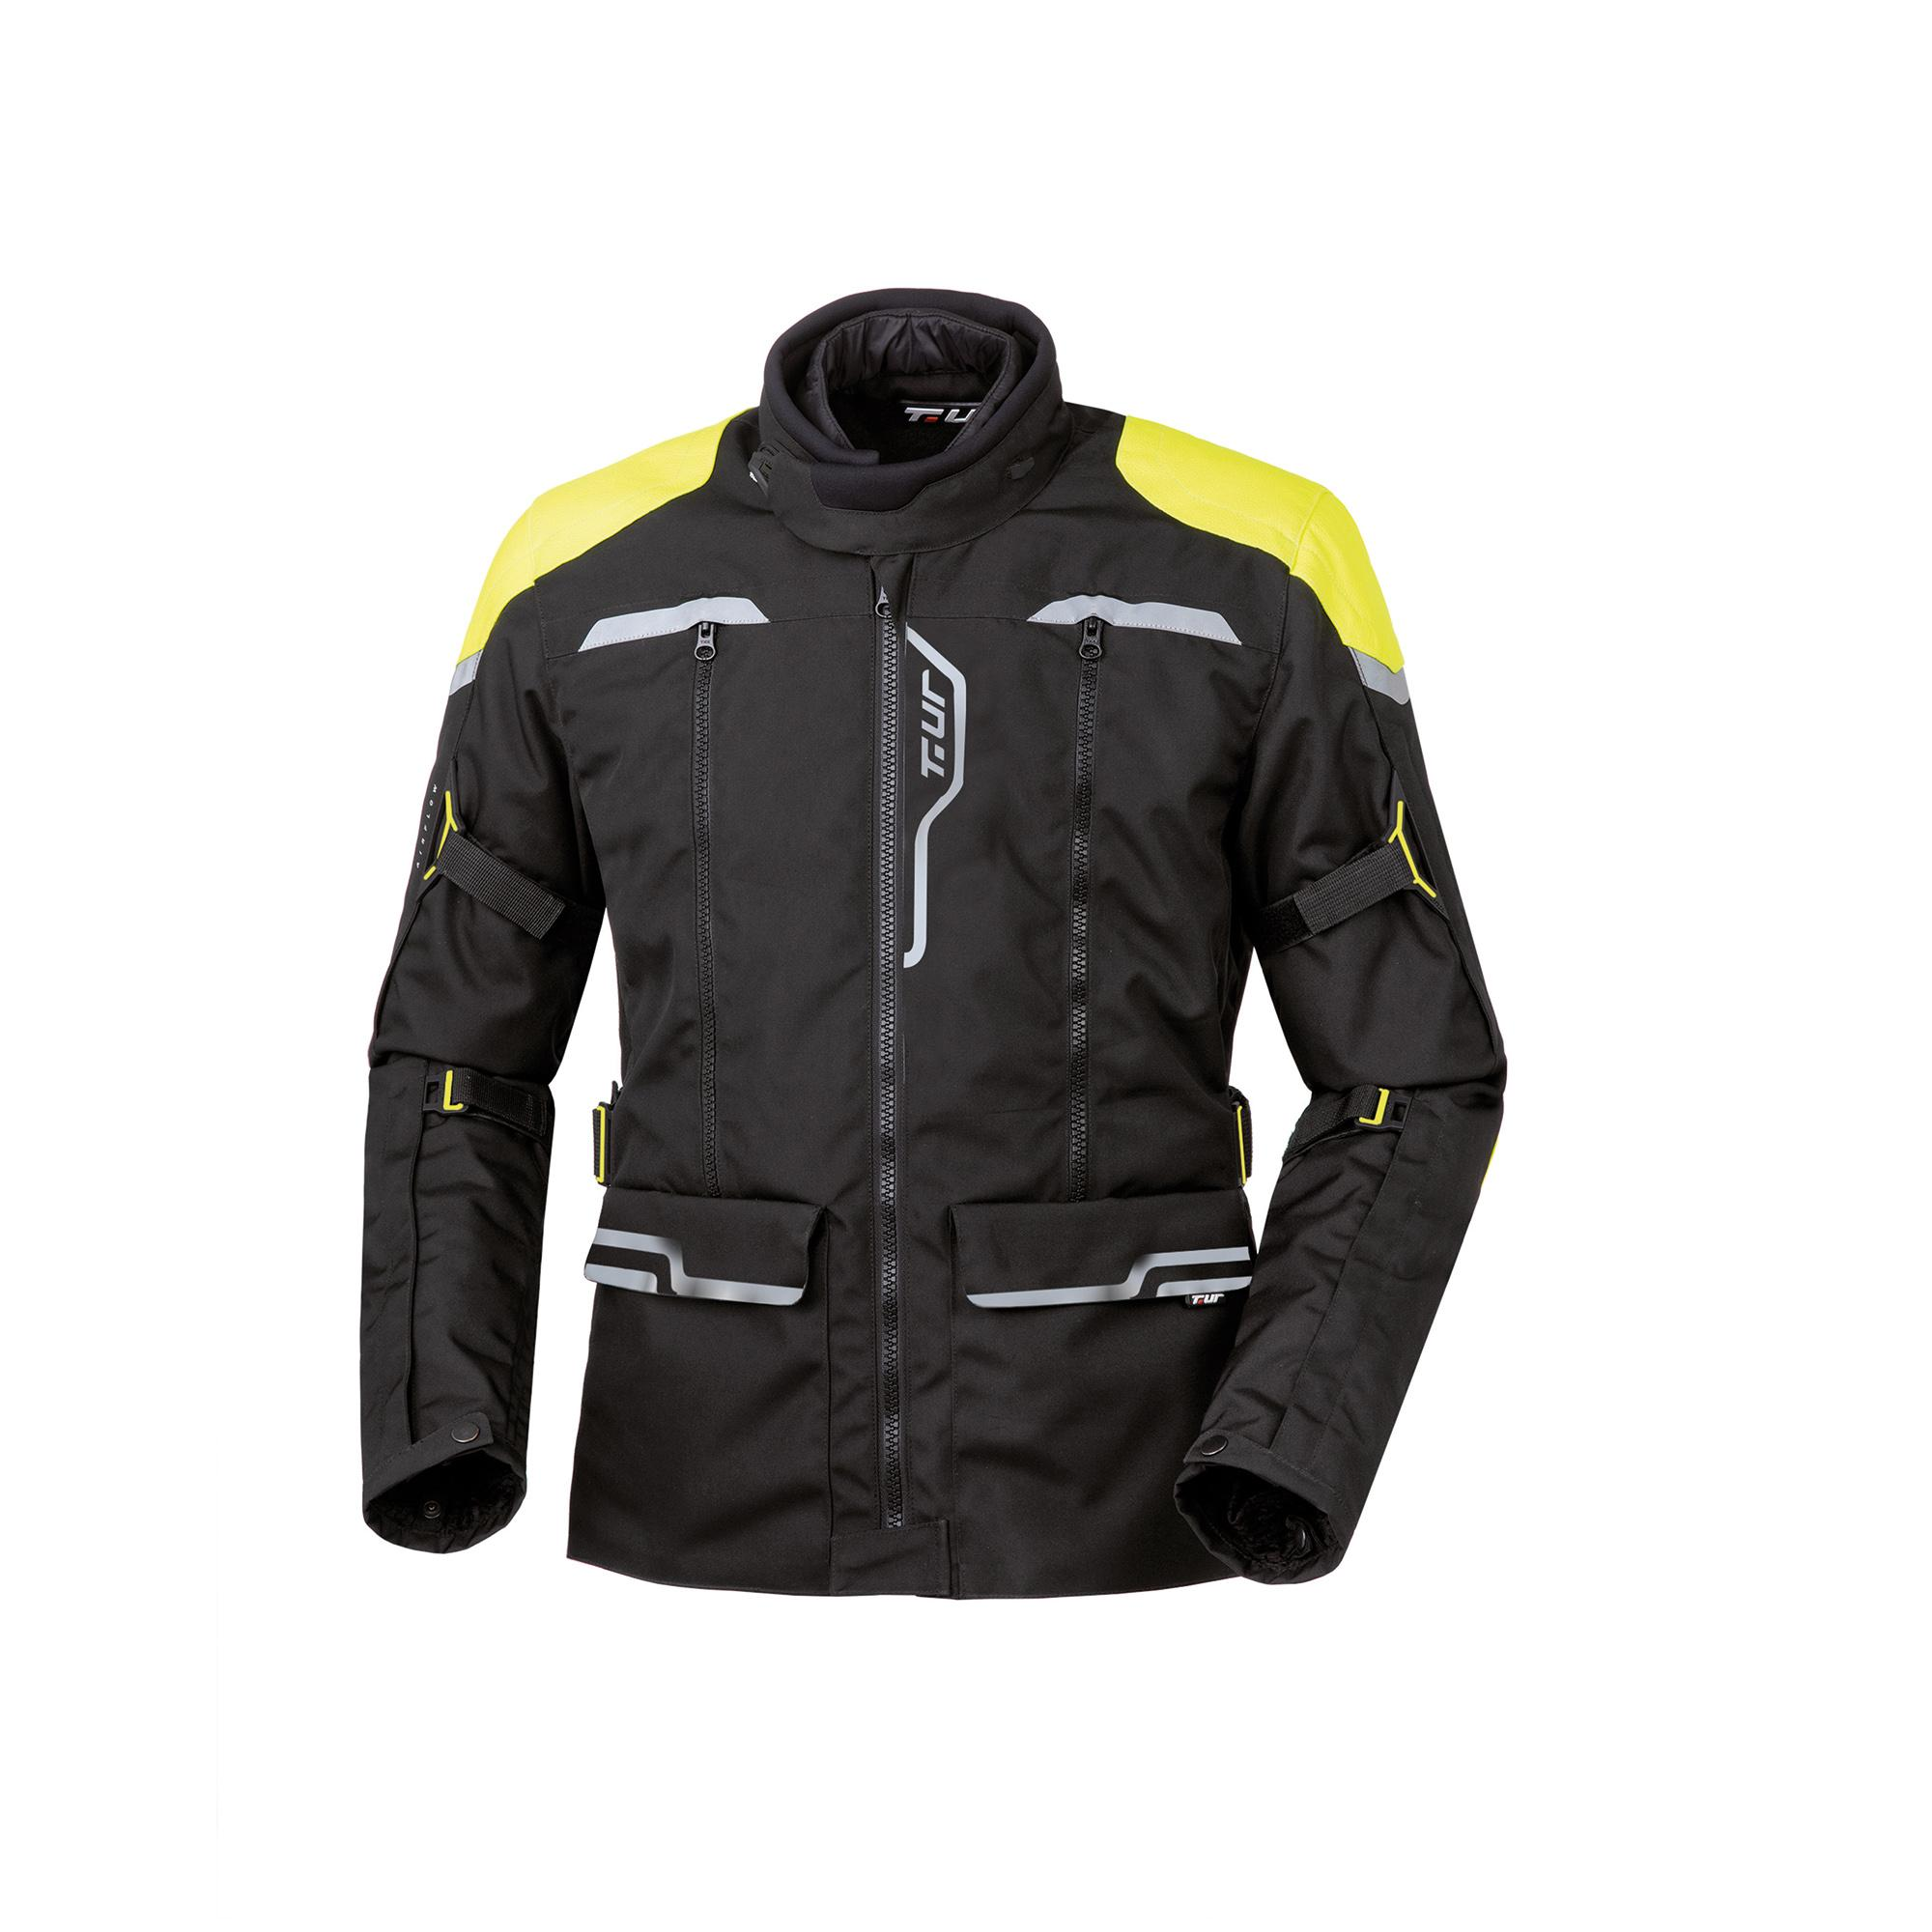 Giacca J-two Black-Yellow Fluo